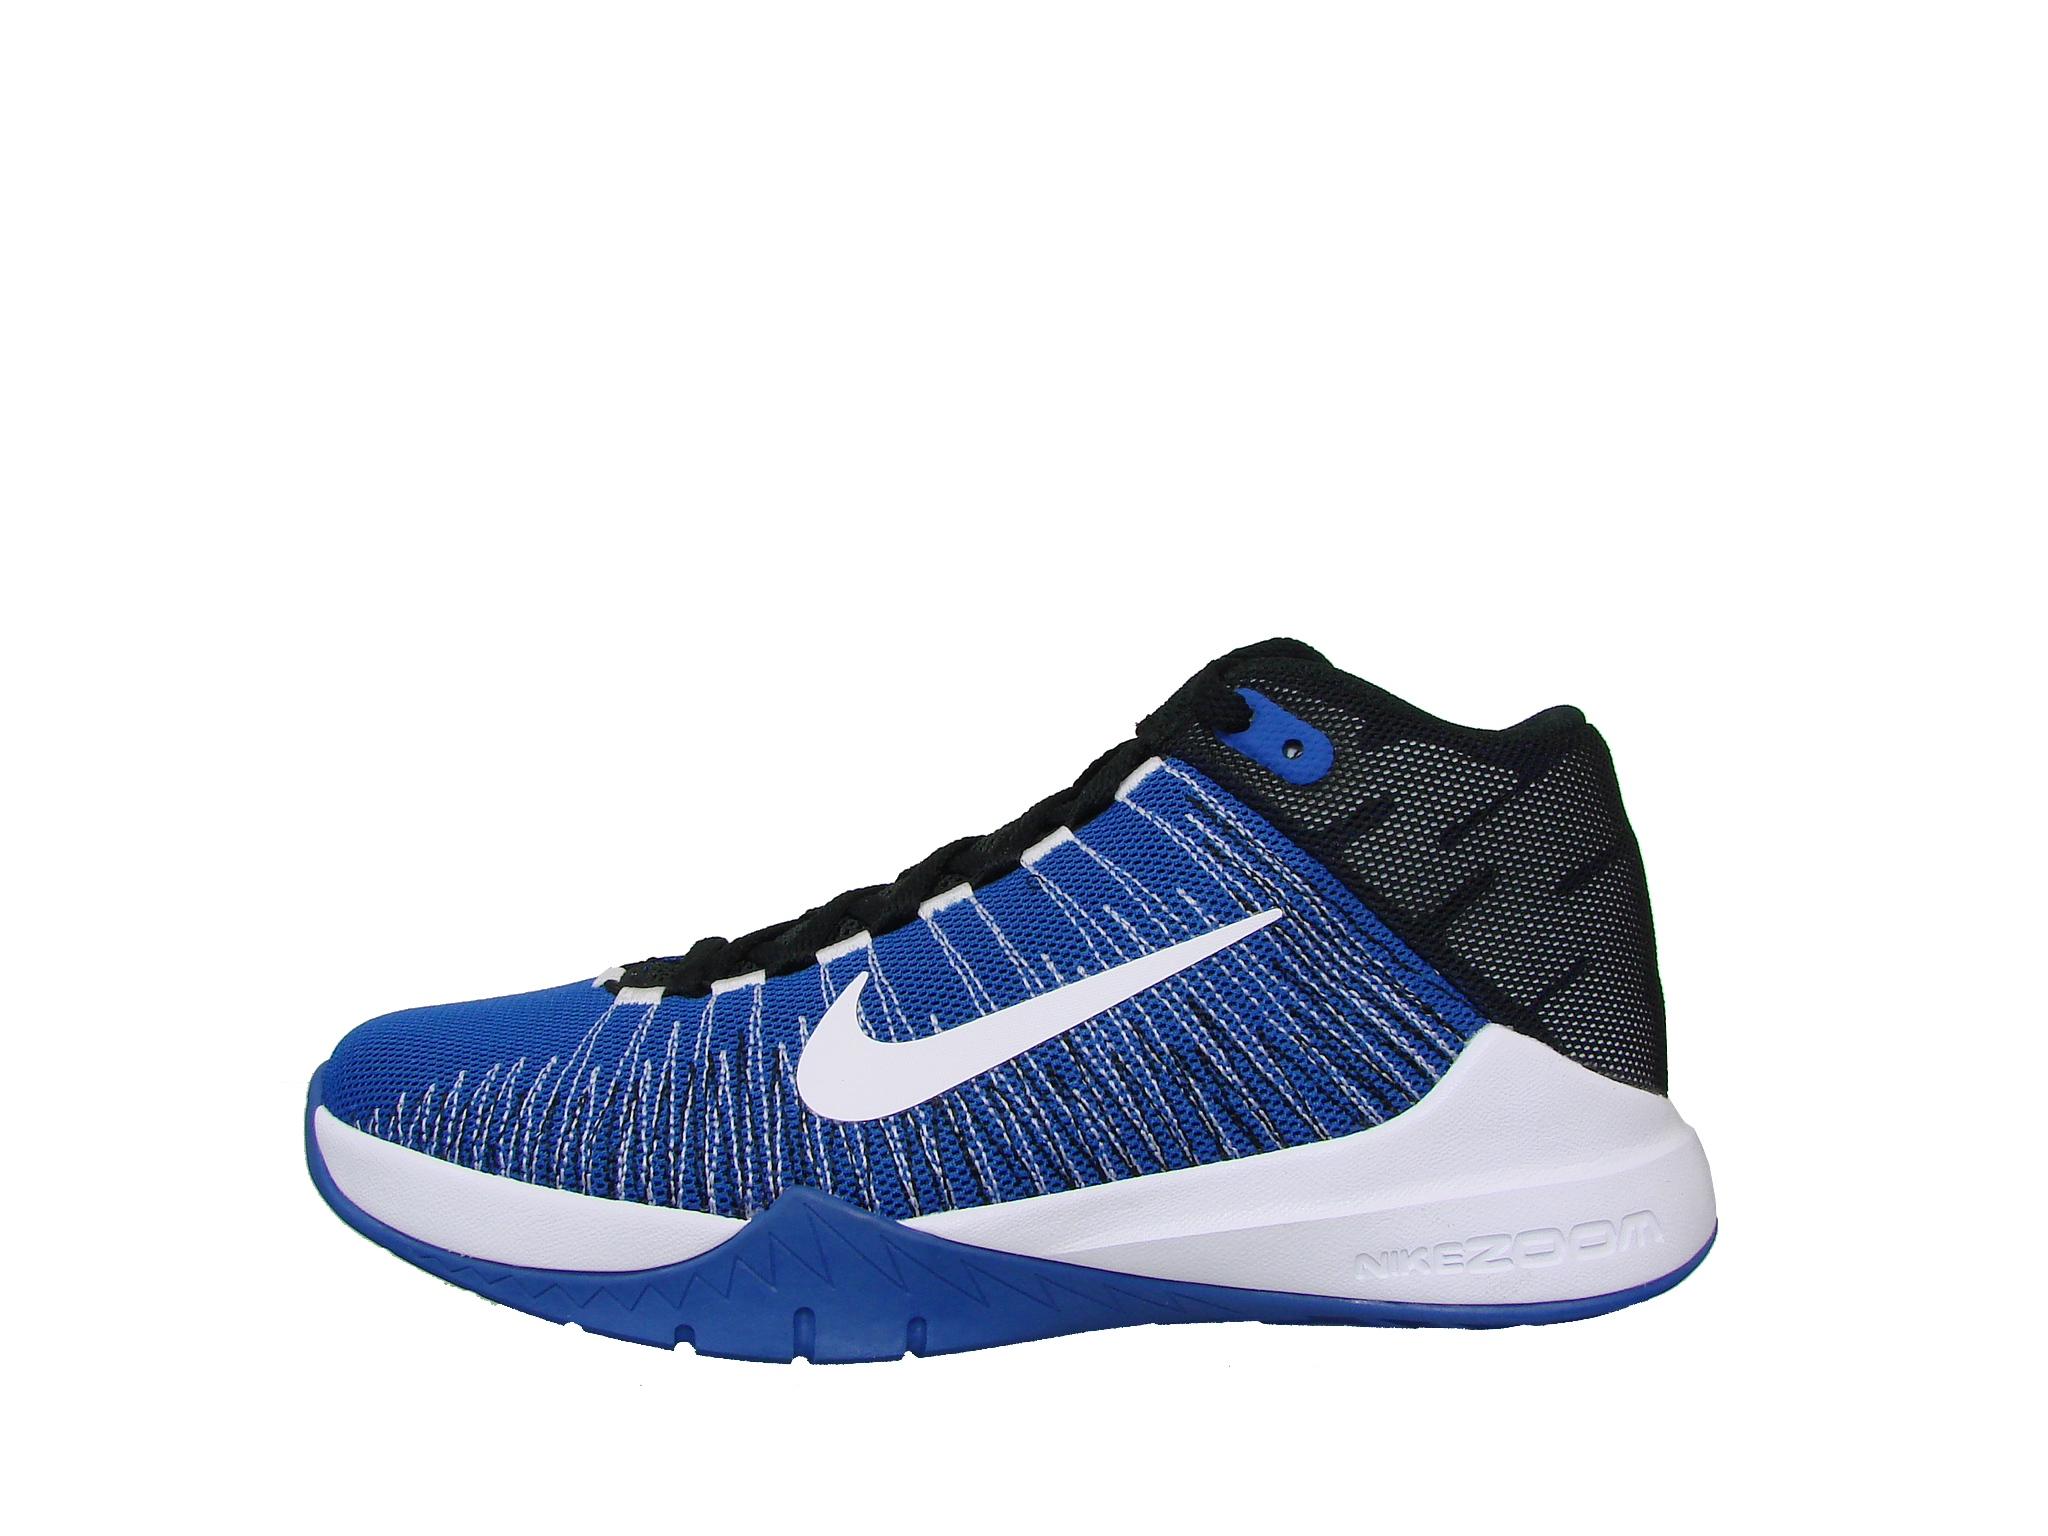 Buty Nike Zoom Ascention GS Jr 834319-400 r. 38